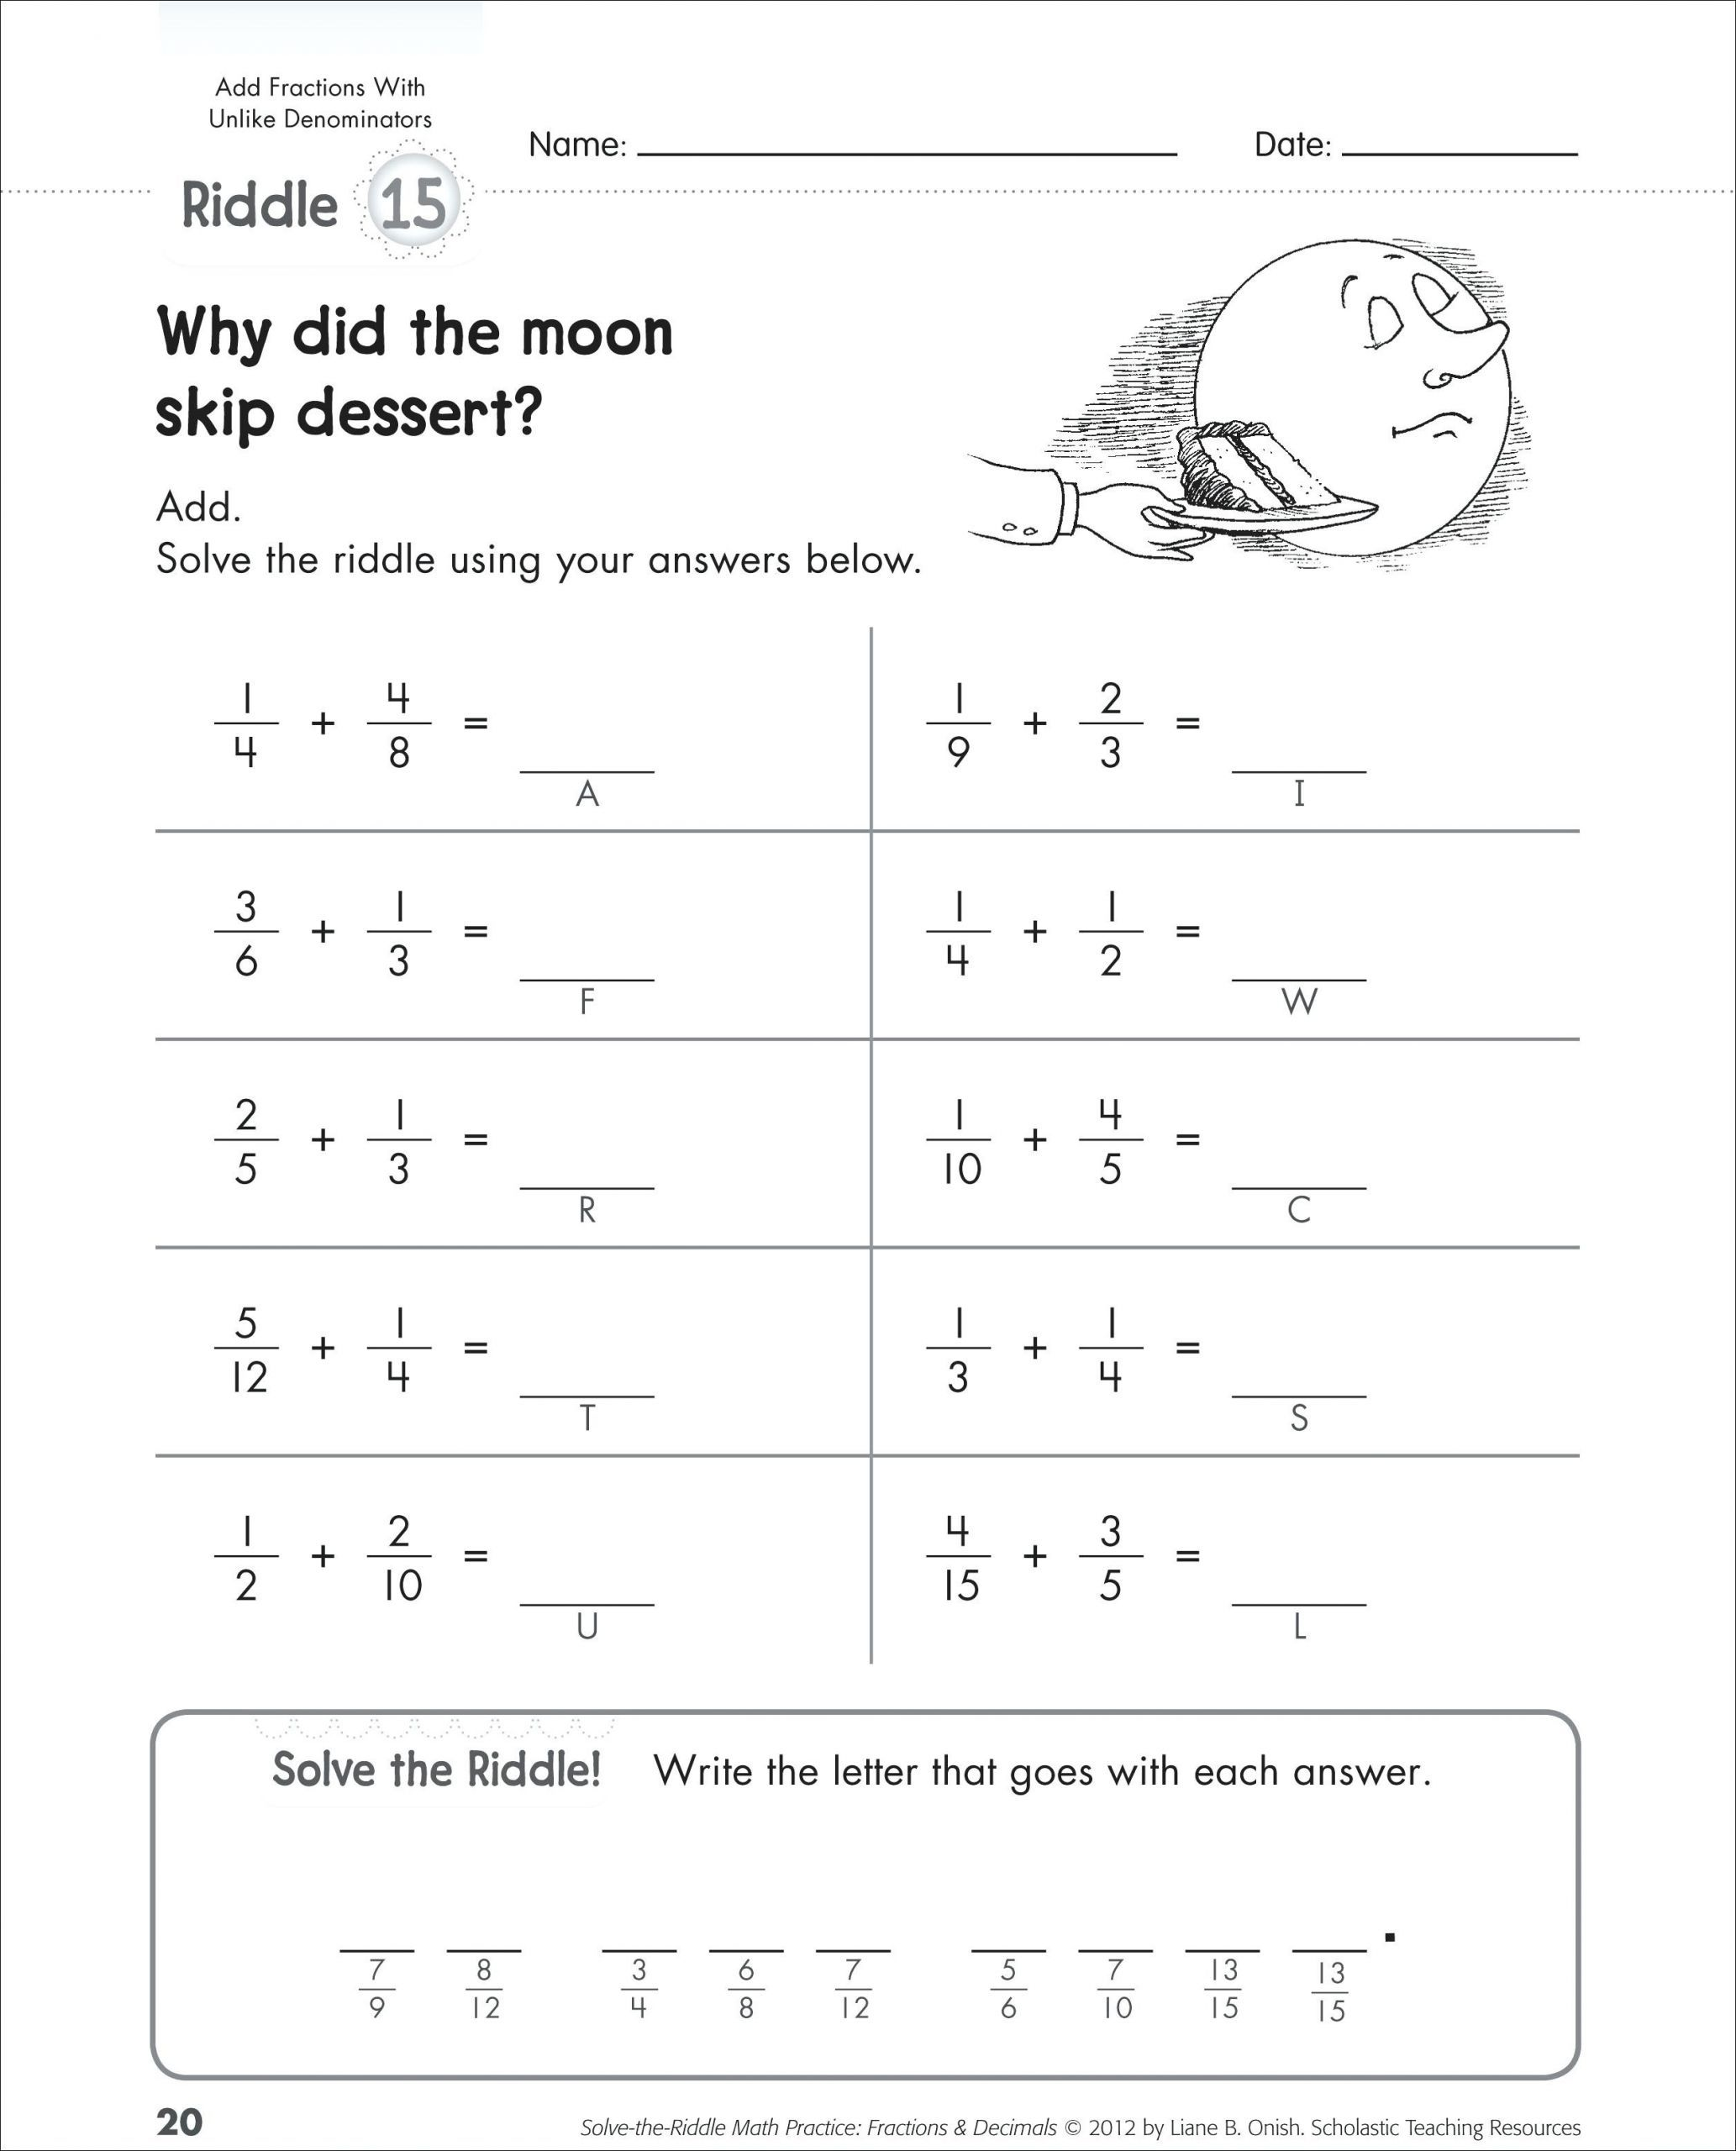 4 Free Math Worksheets Third Grade 3 Fractions And Decimals Adding Fractions Like D Fractions Worksheets Adding And Subtracting Fractions Subtracting Fractions